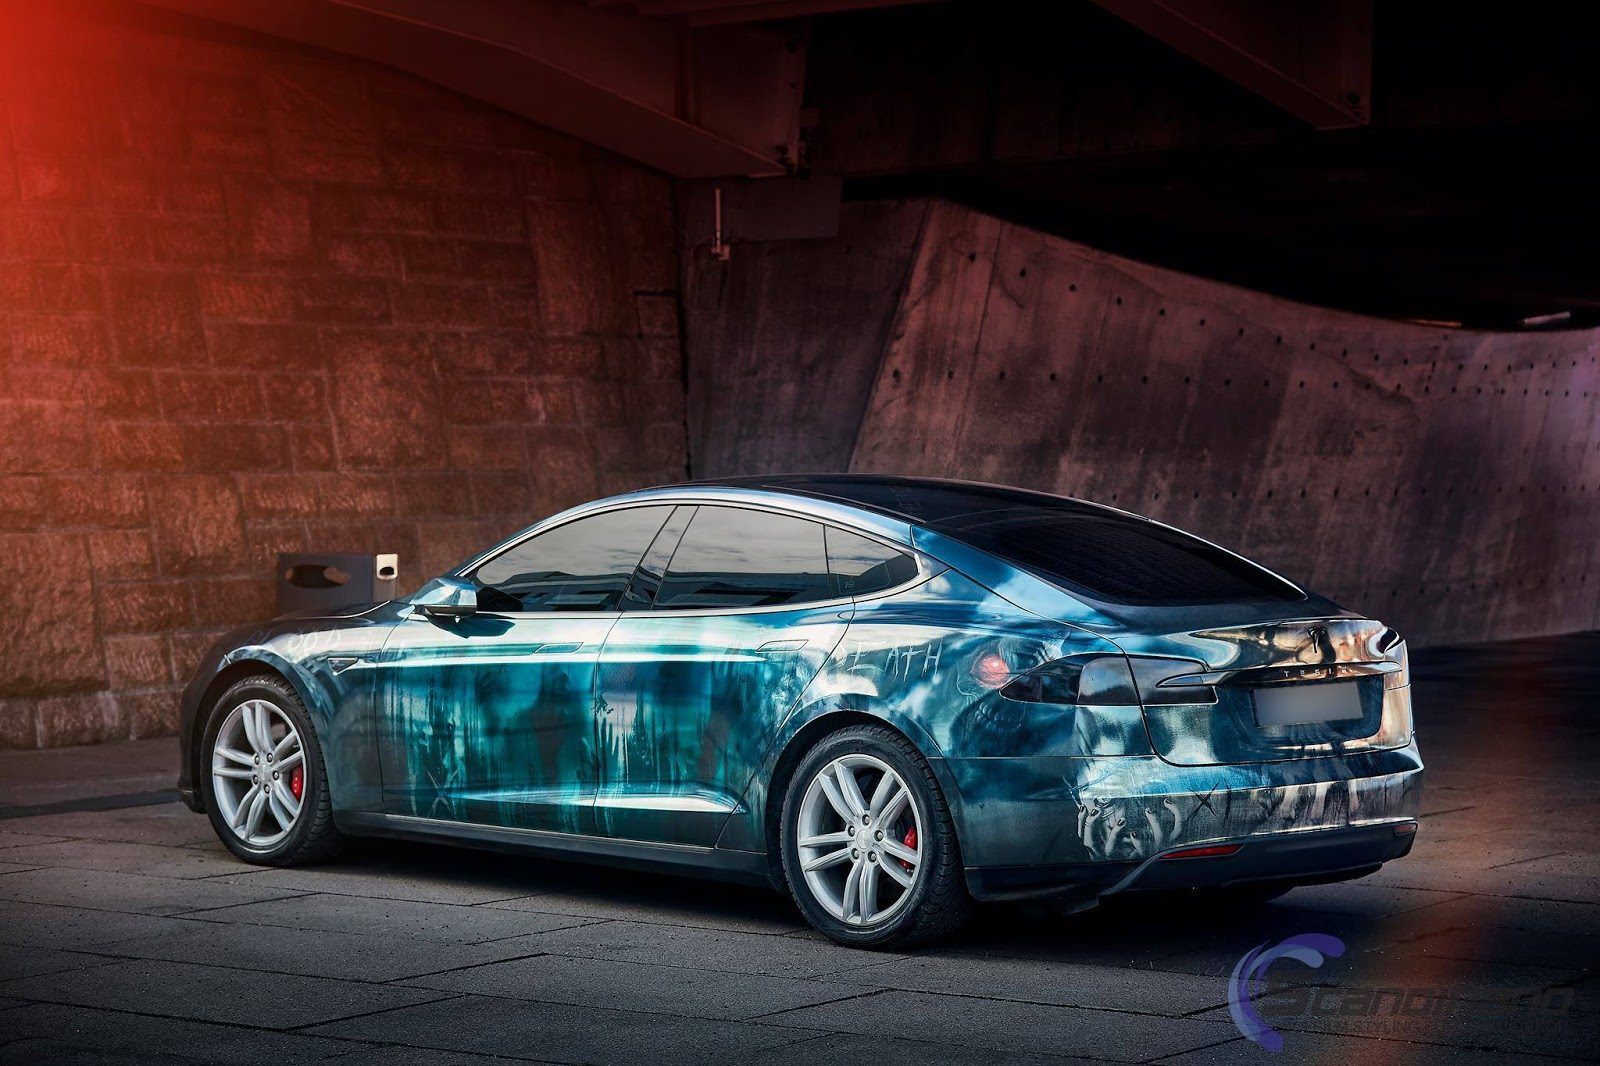 tuning tesla model s im zombie style myauto24 das. Black Bedroom Furniture Sets. Home Design Ideas